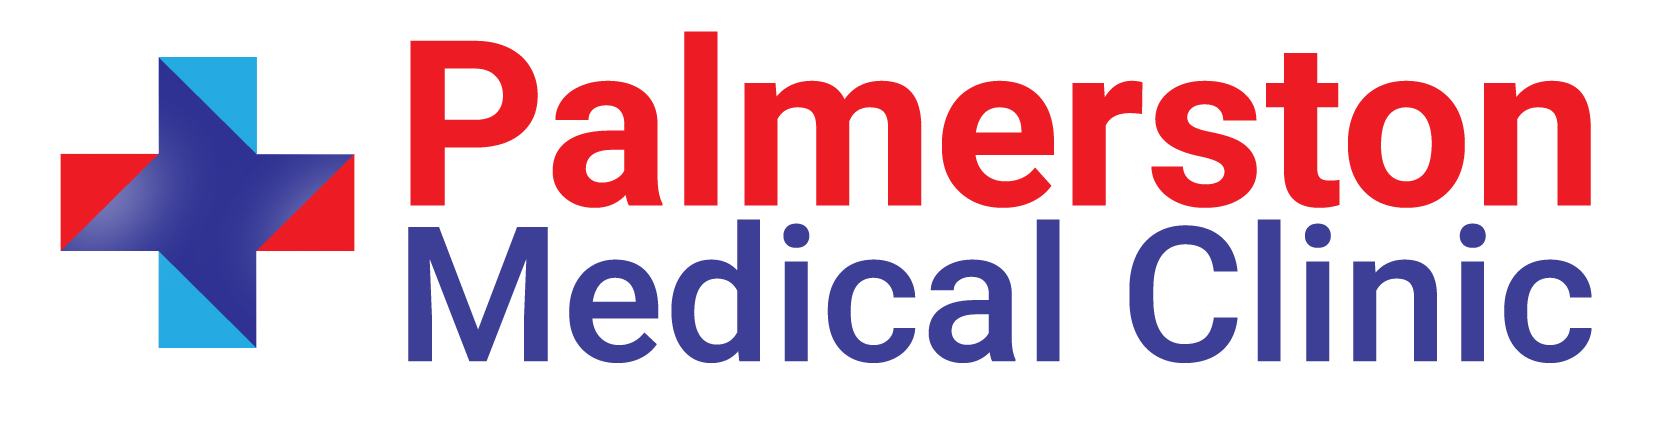 Palmerston Medical Clinic